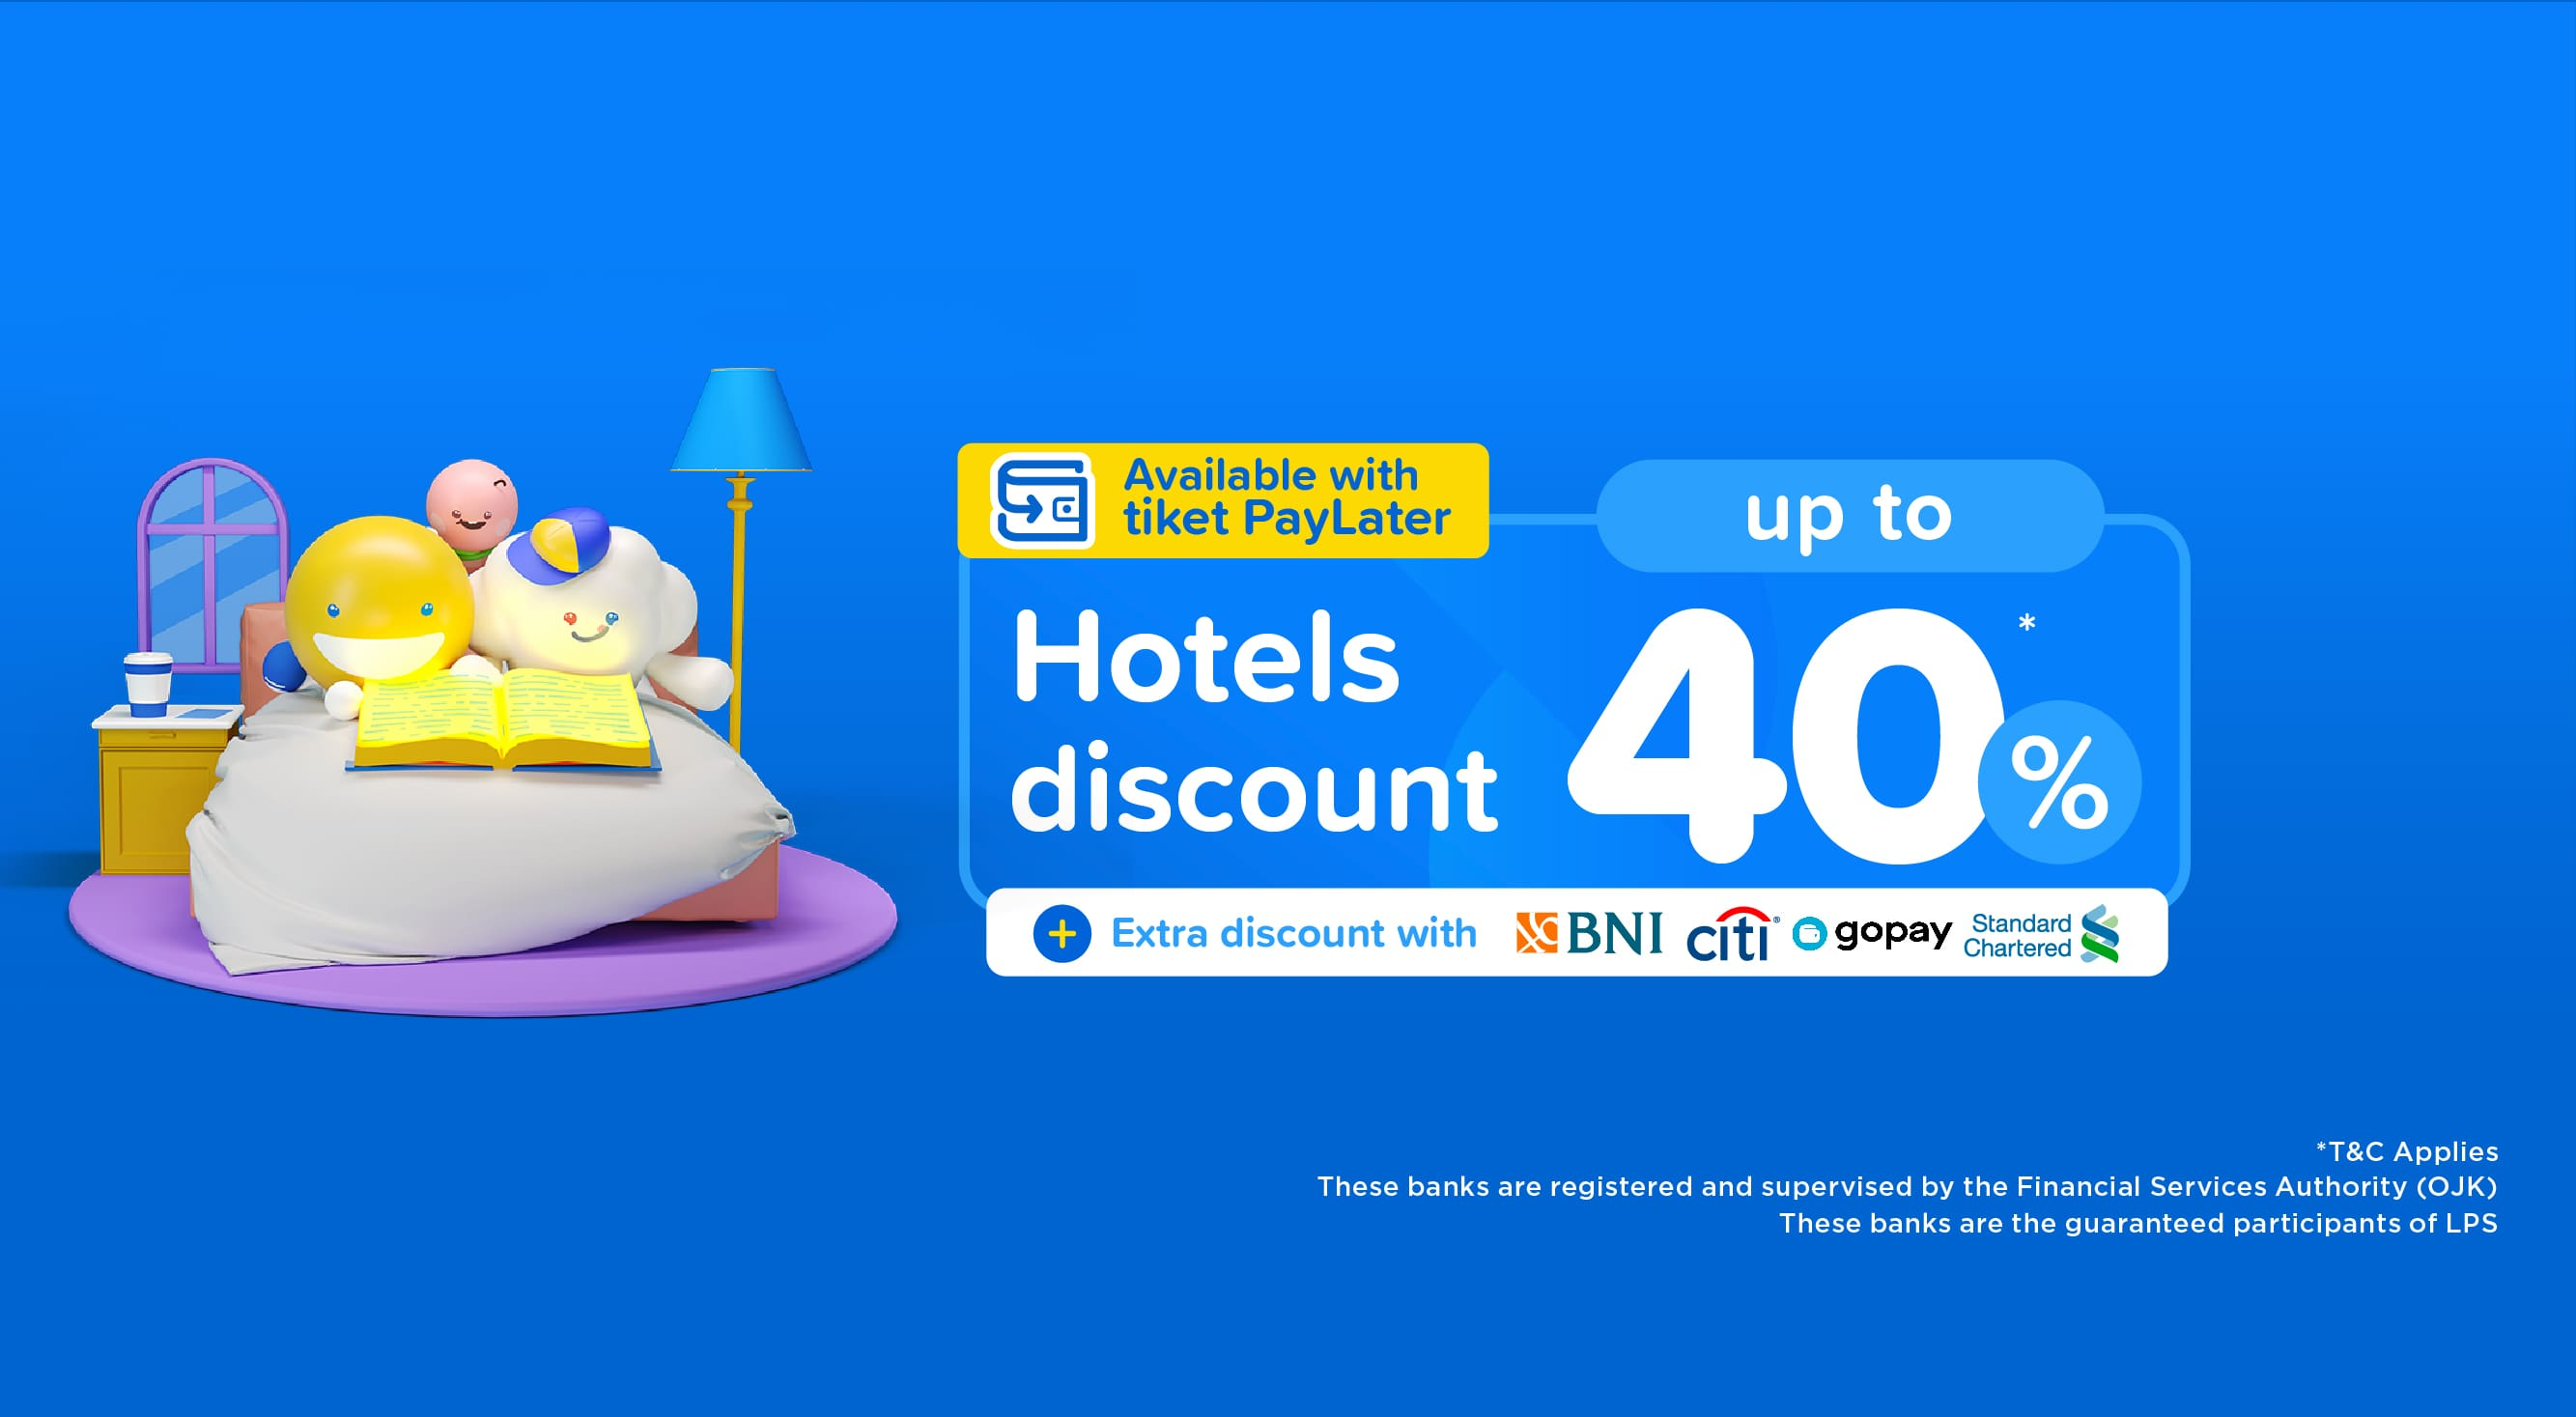 Hotel discount up to 40%